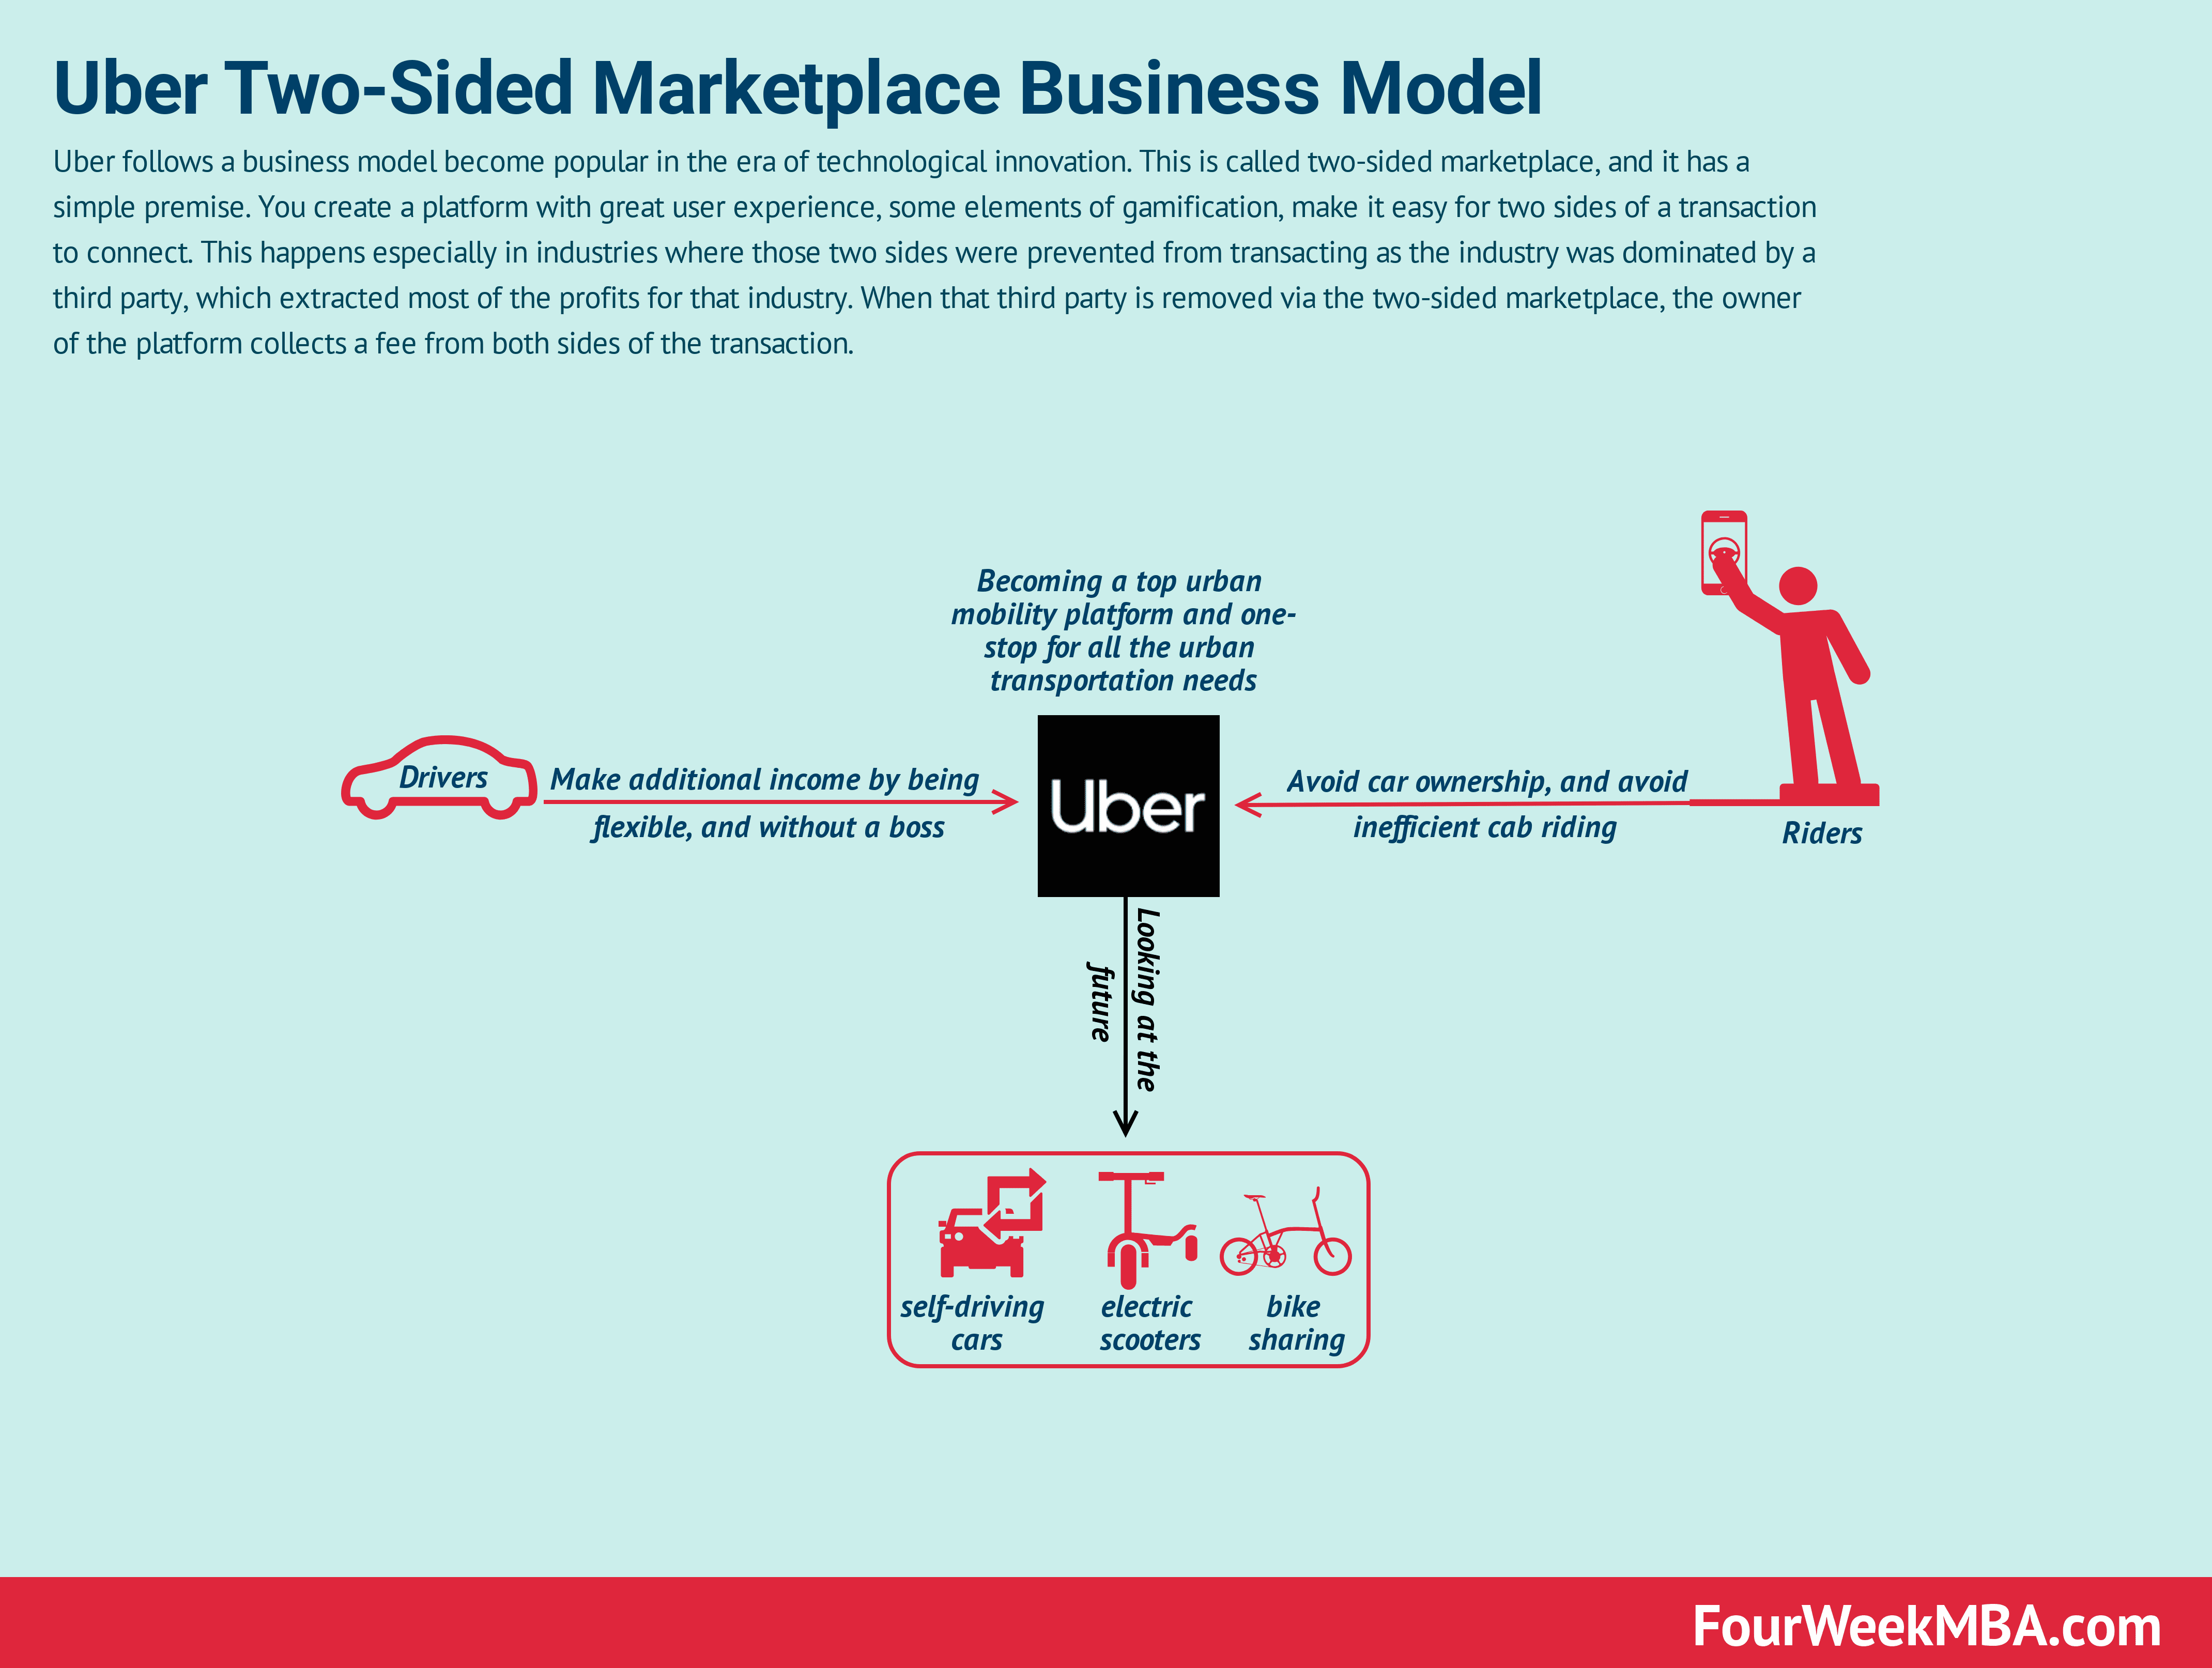 How Does Uber Make Money? Uber Business Model In A Nutshell